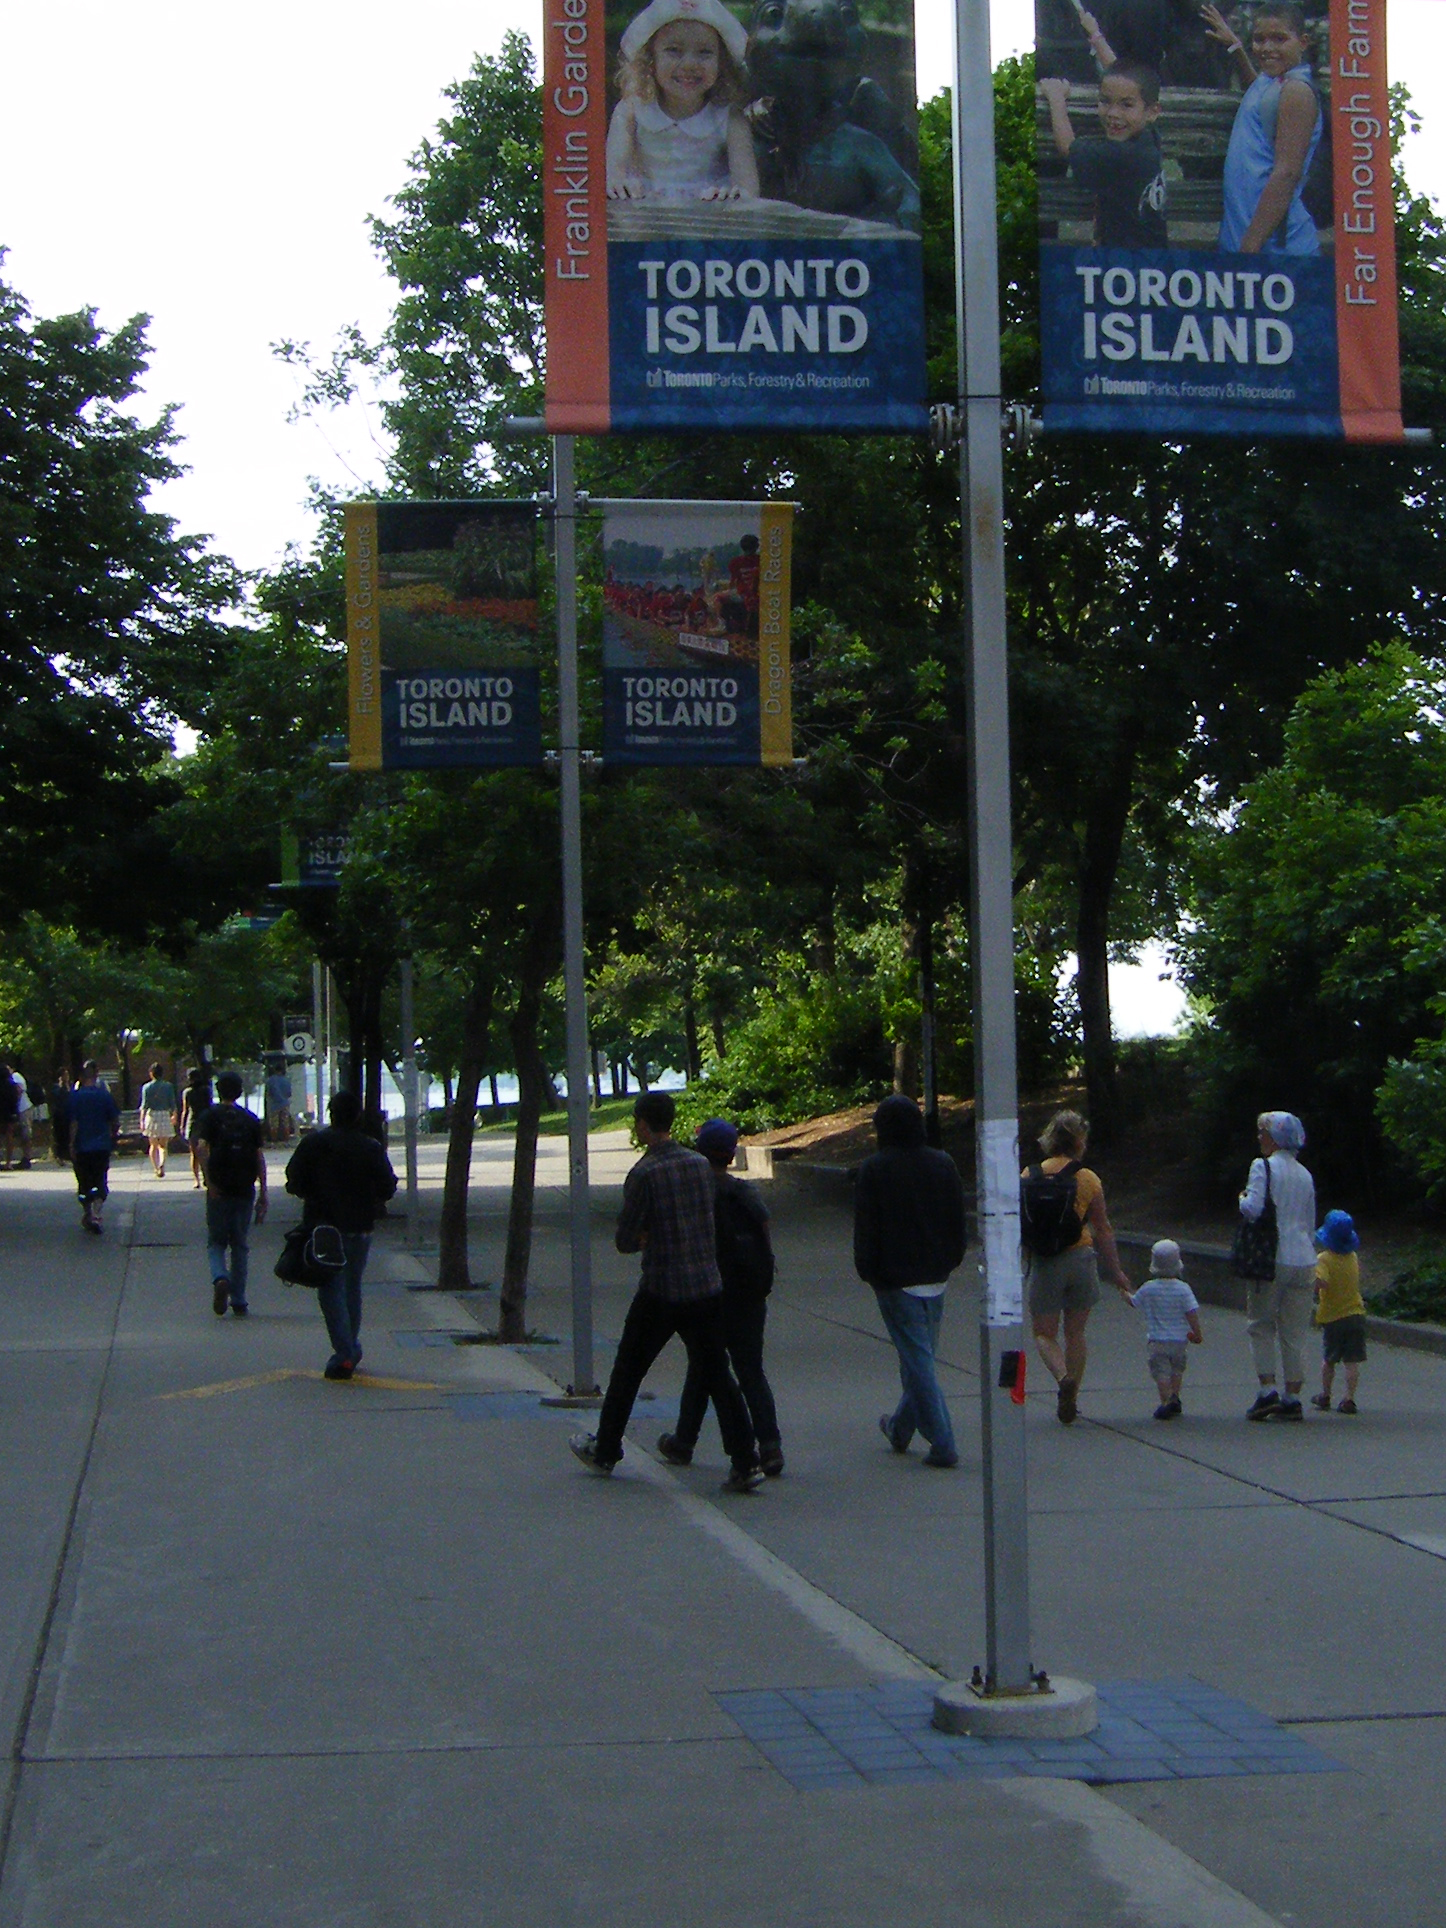 The Road to Toronto Island